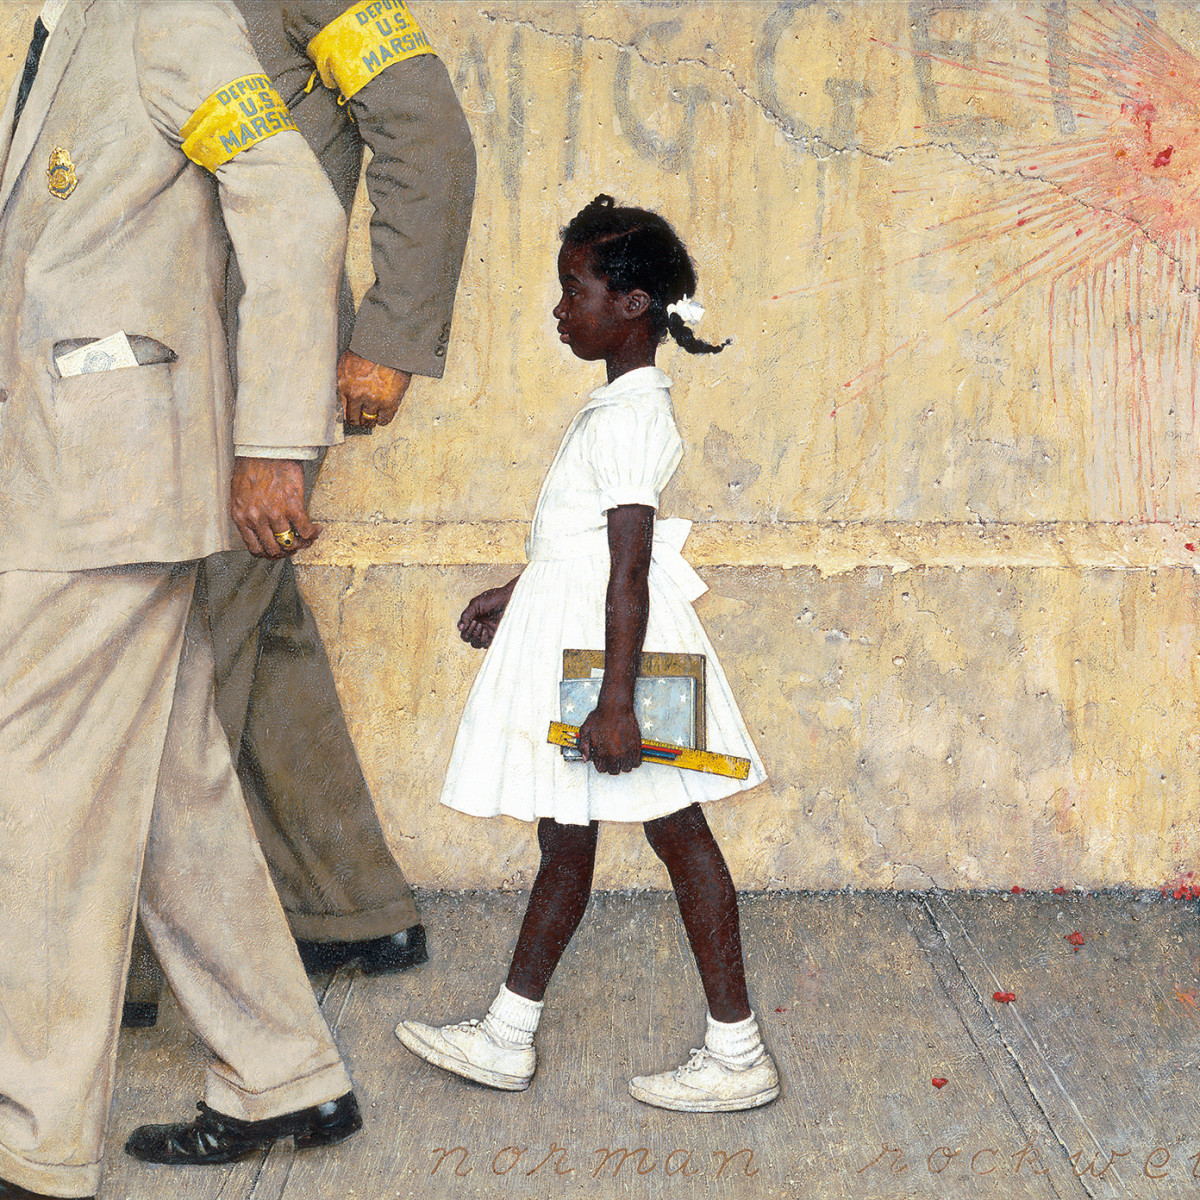 Norman Rockwell (1894-1978), The Problem We All Live With, 1963